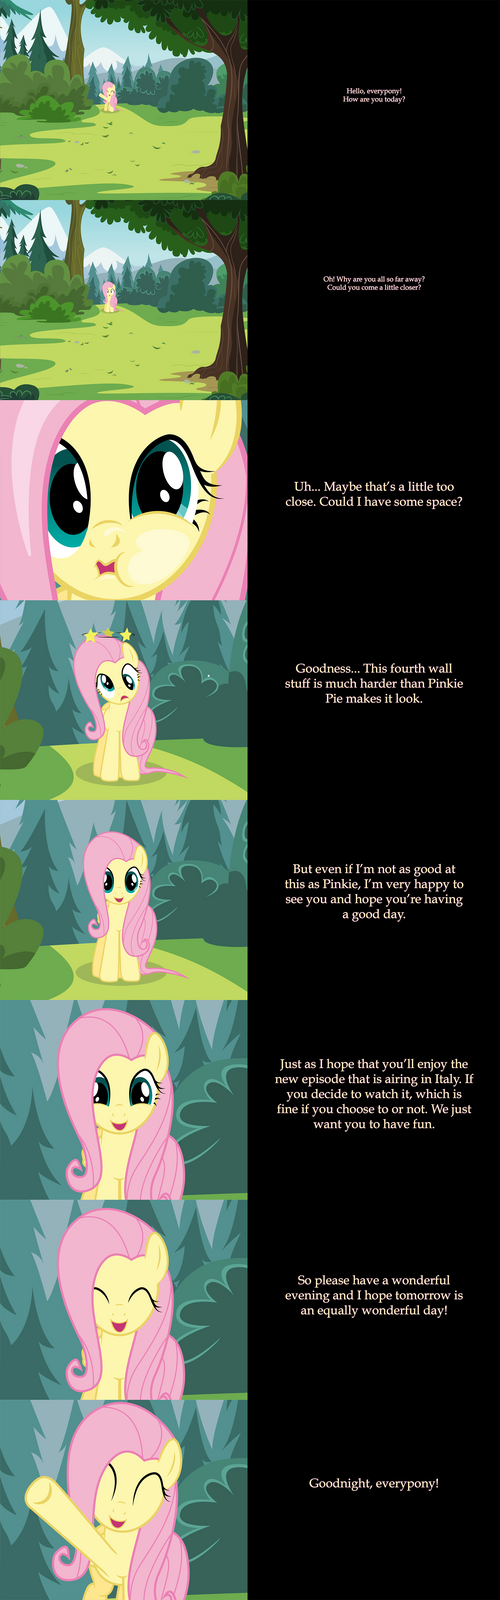 Fluttershy Says Goodnight: 4th Wall